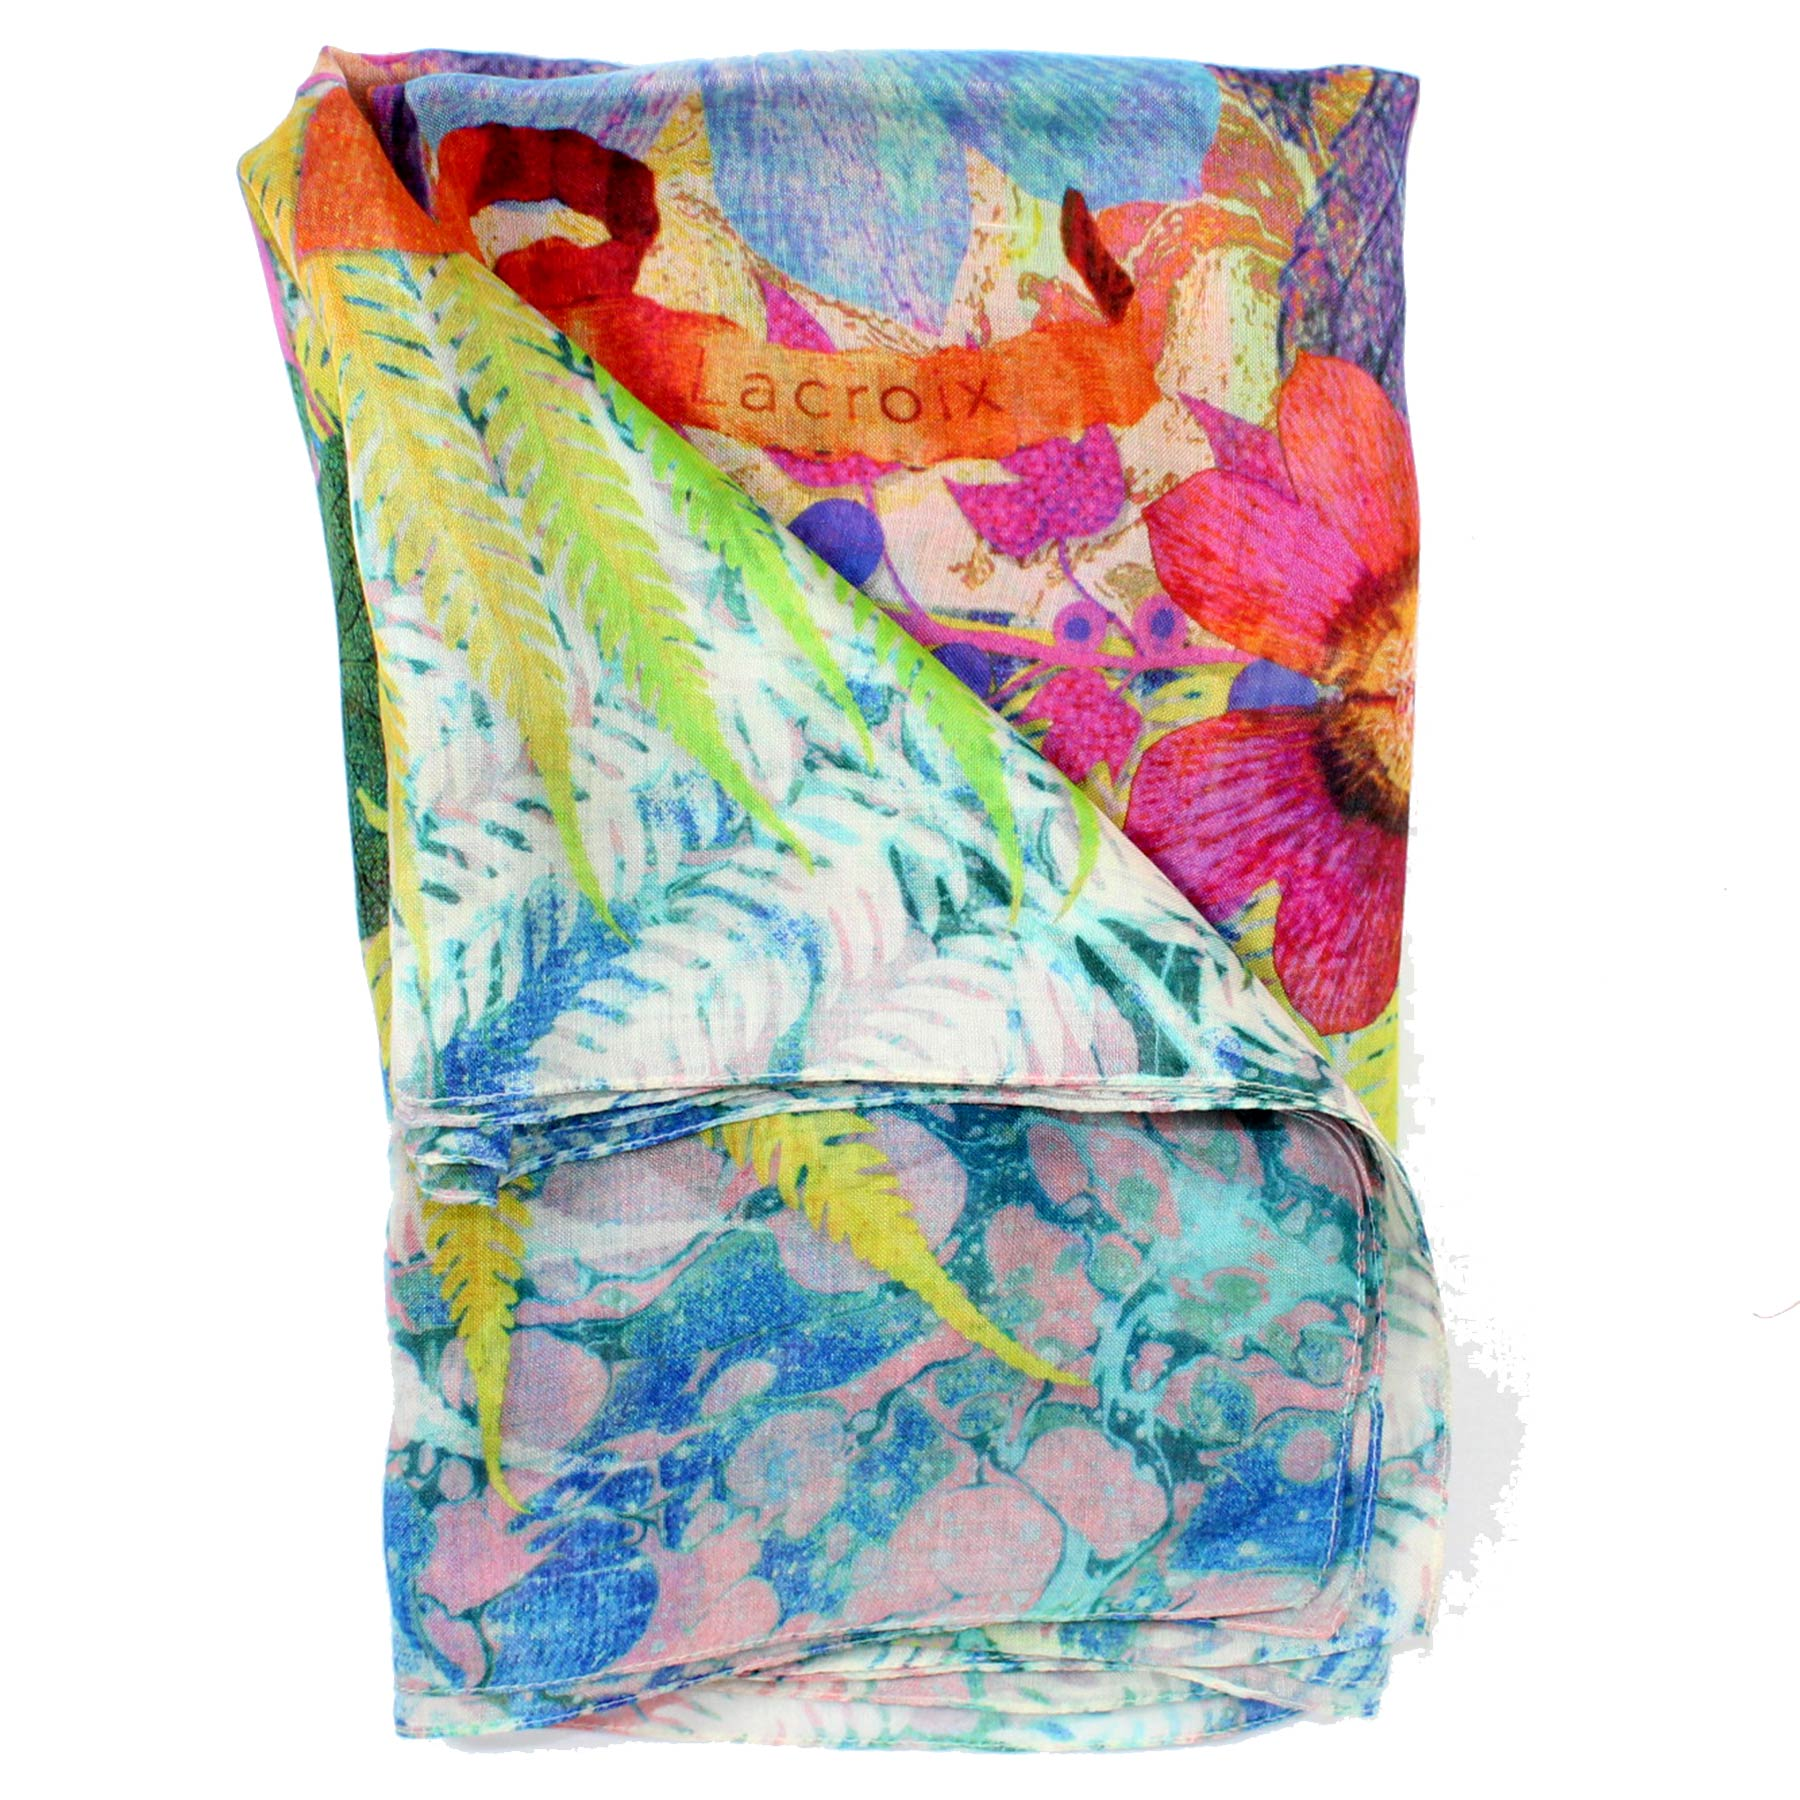 Christian Lacroix Scarf Blue Pink Lime Floral Design - Extra Large Square Silk Scarf